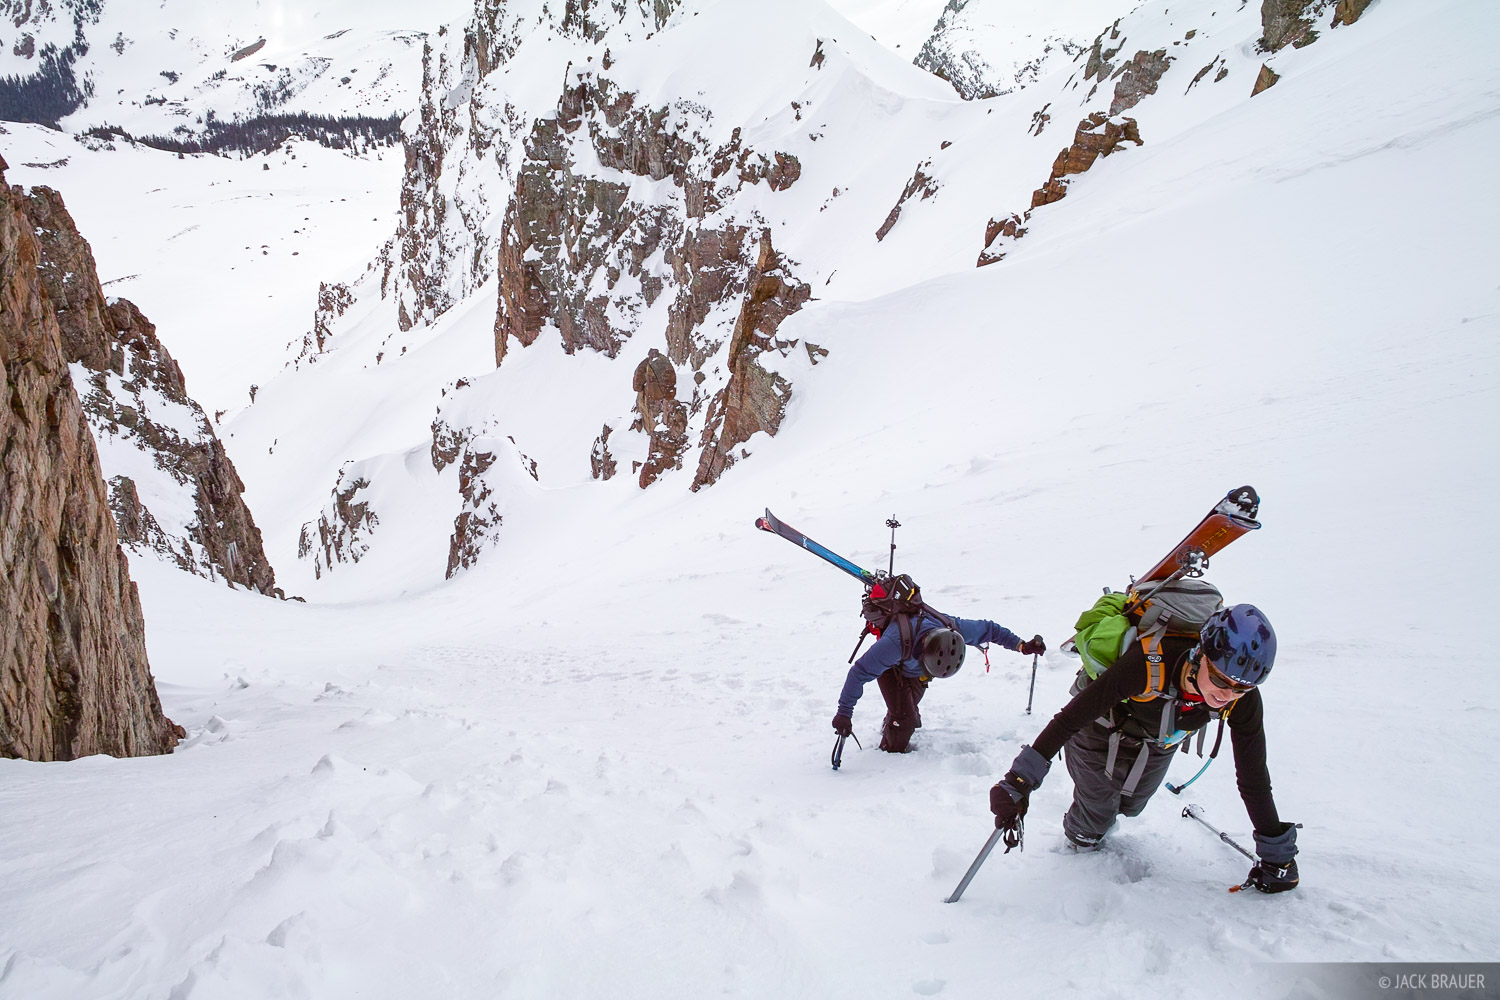 Hiking up the Pearl Couloir on Cathedral Peak - May. More photos and trip report here.